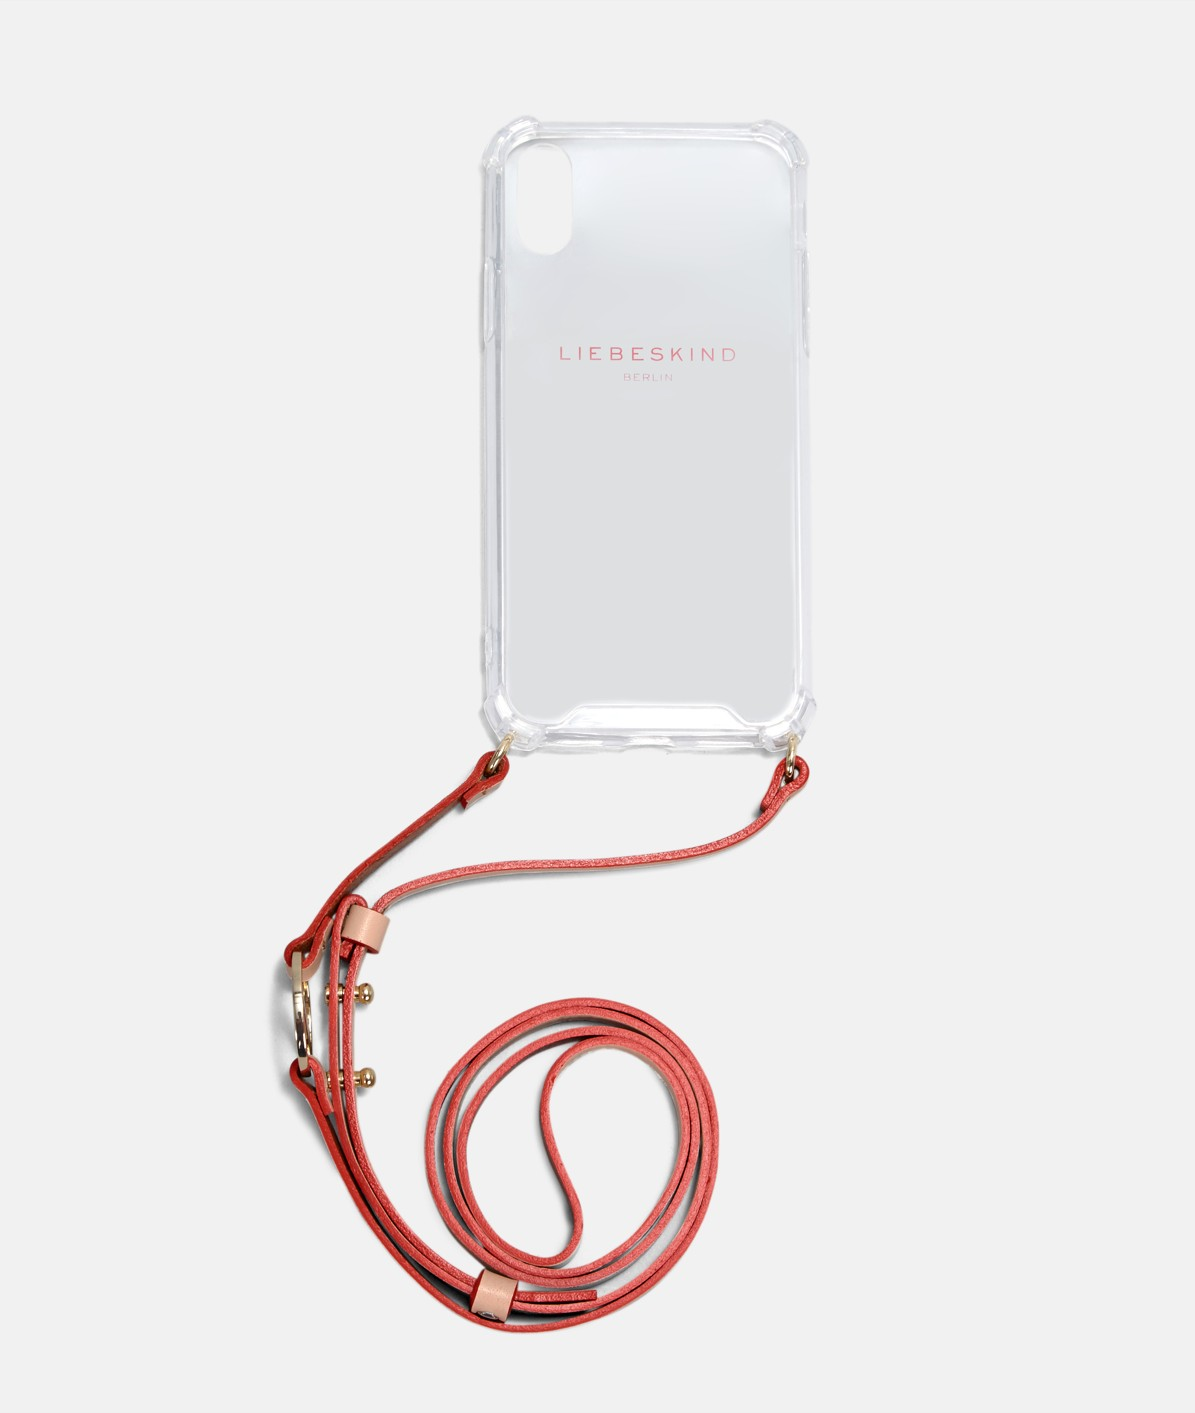 Mobile phone case with leather strap from liebeskind